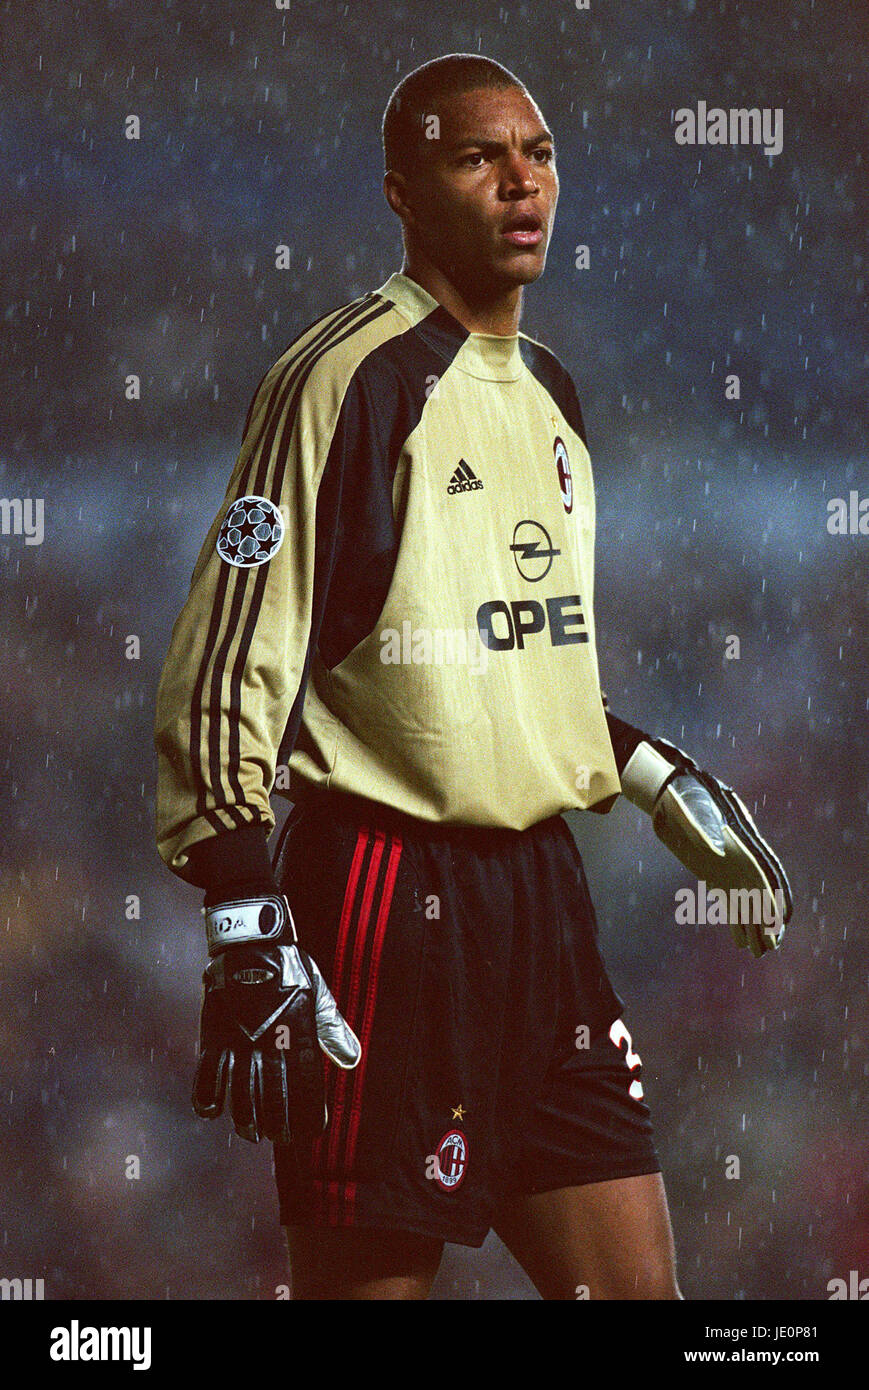 Dida Ac Milan Brazil Leeds 19 September 2000 Stock Photo Alamy